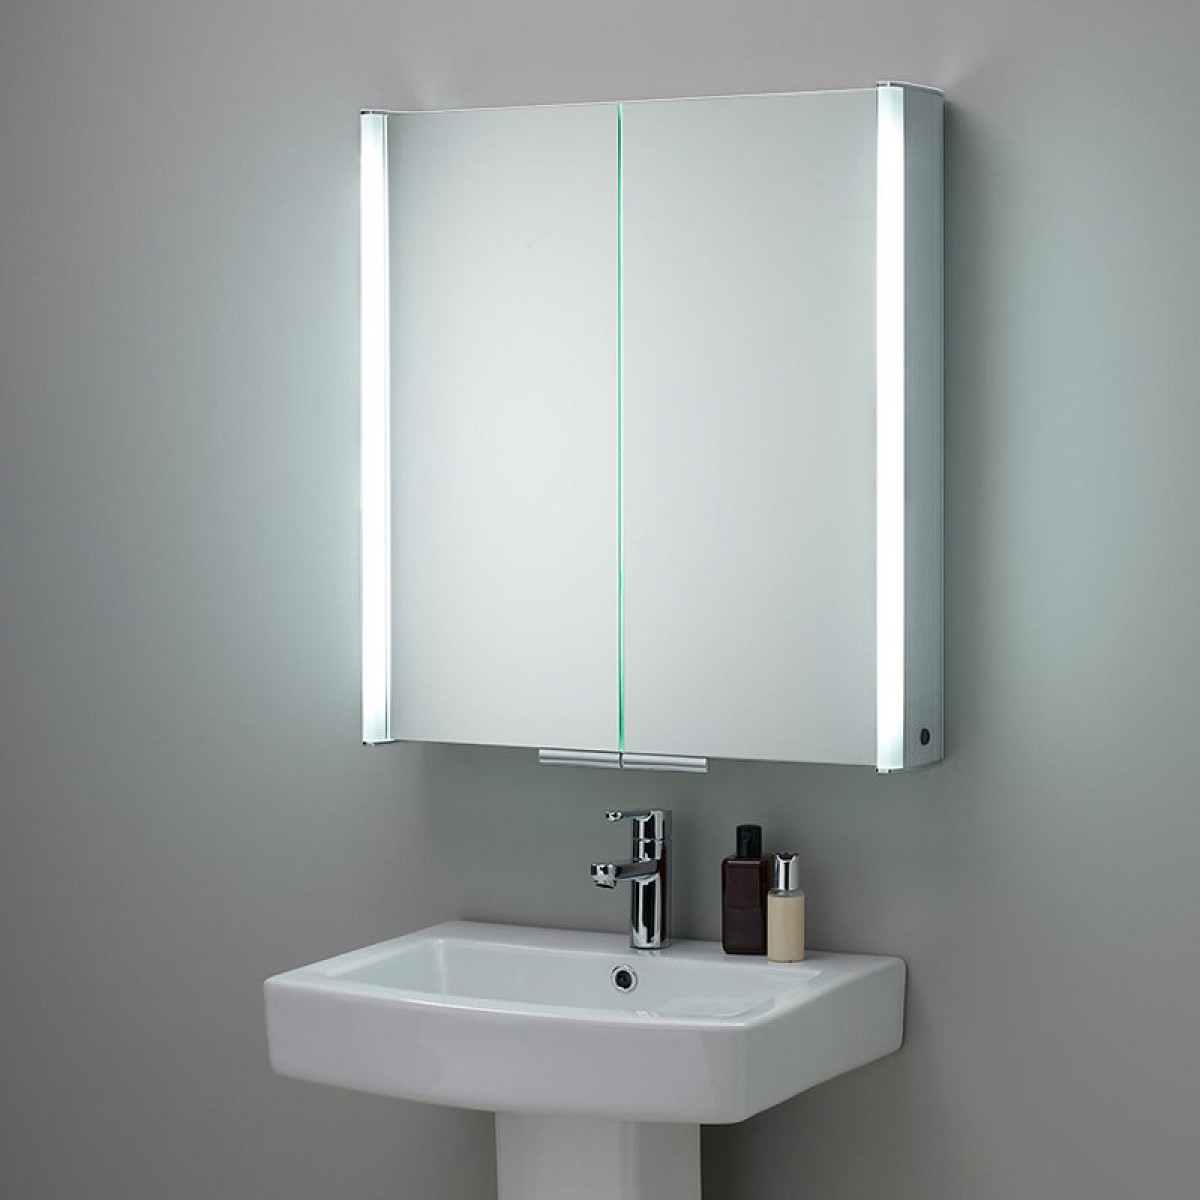 hib bathroom cabinets hib xenon 60 led aluminium illuminated bathroom cabinet 16270